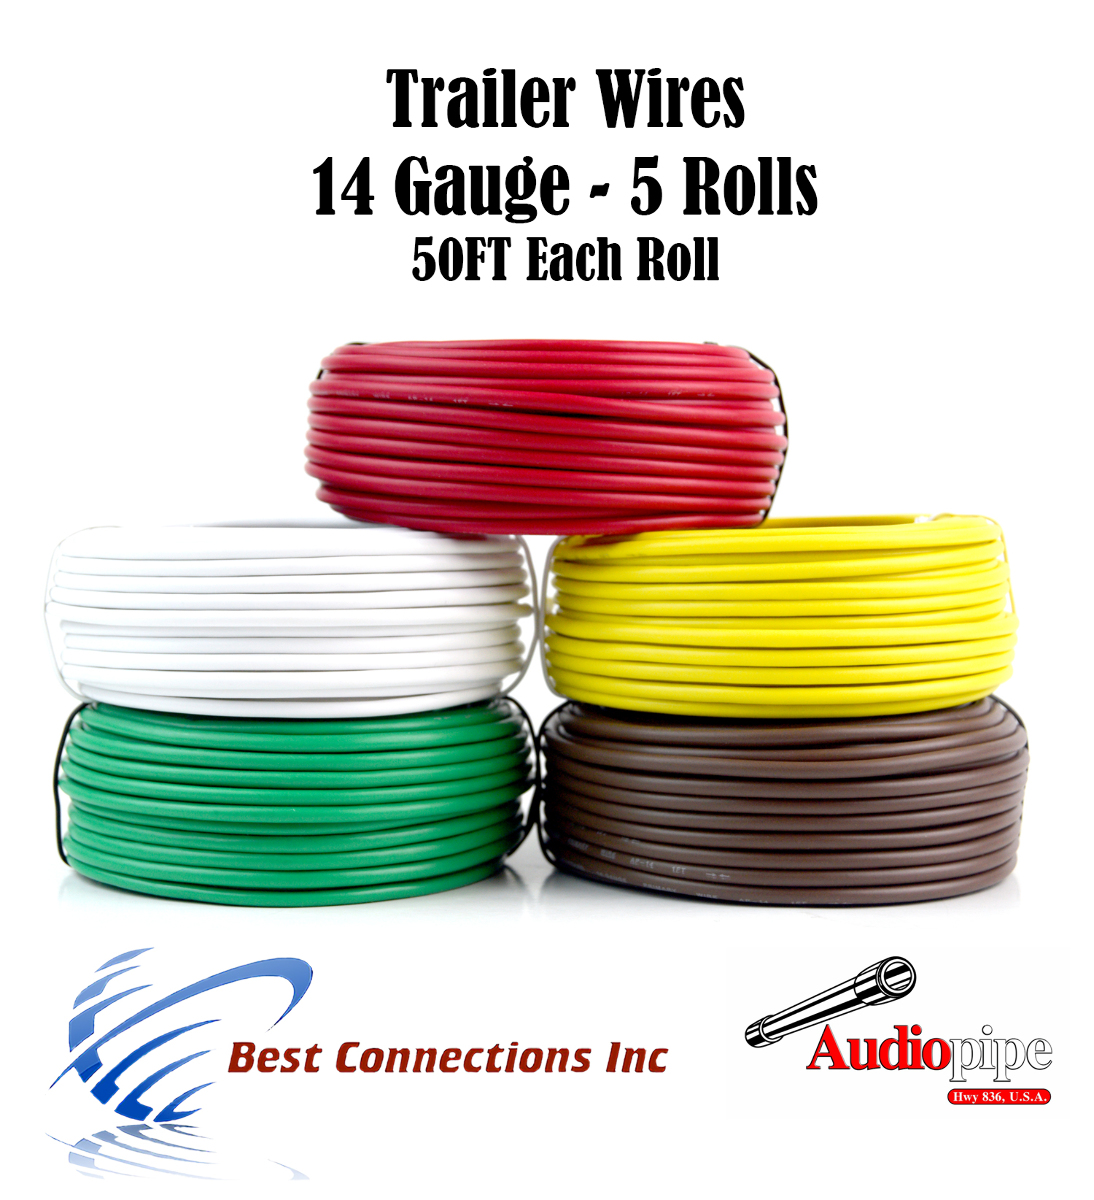 Walgreen/® 4FT TRAILER LIGHT BOARD WITH 5M 5 METRE CABLE CARAVAN CAR TOURING TRAVEL TOWING